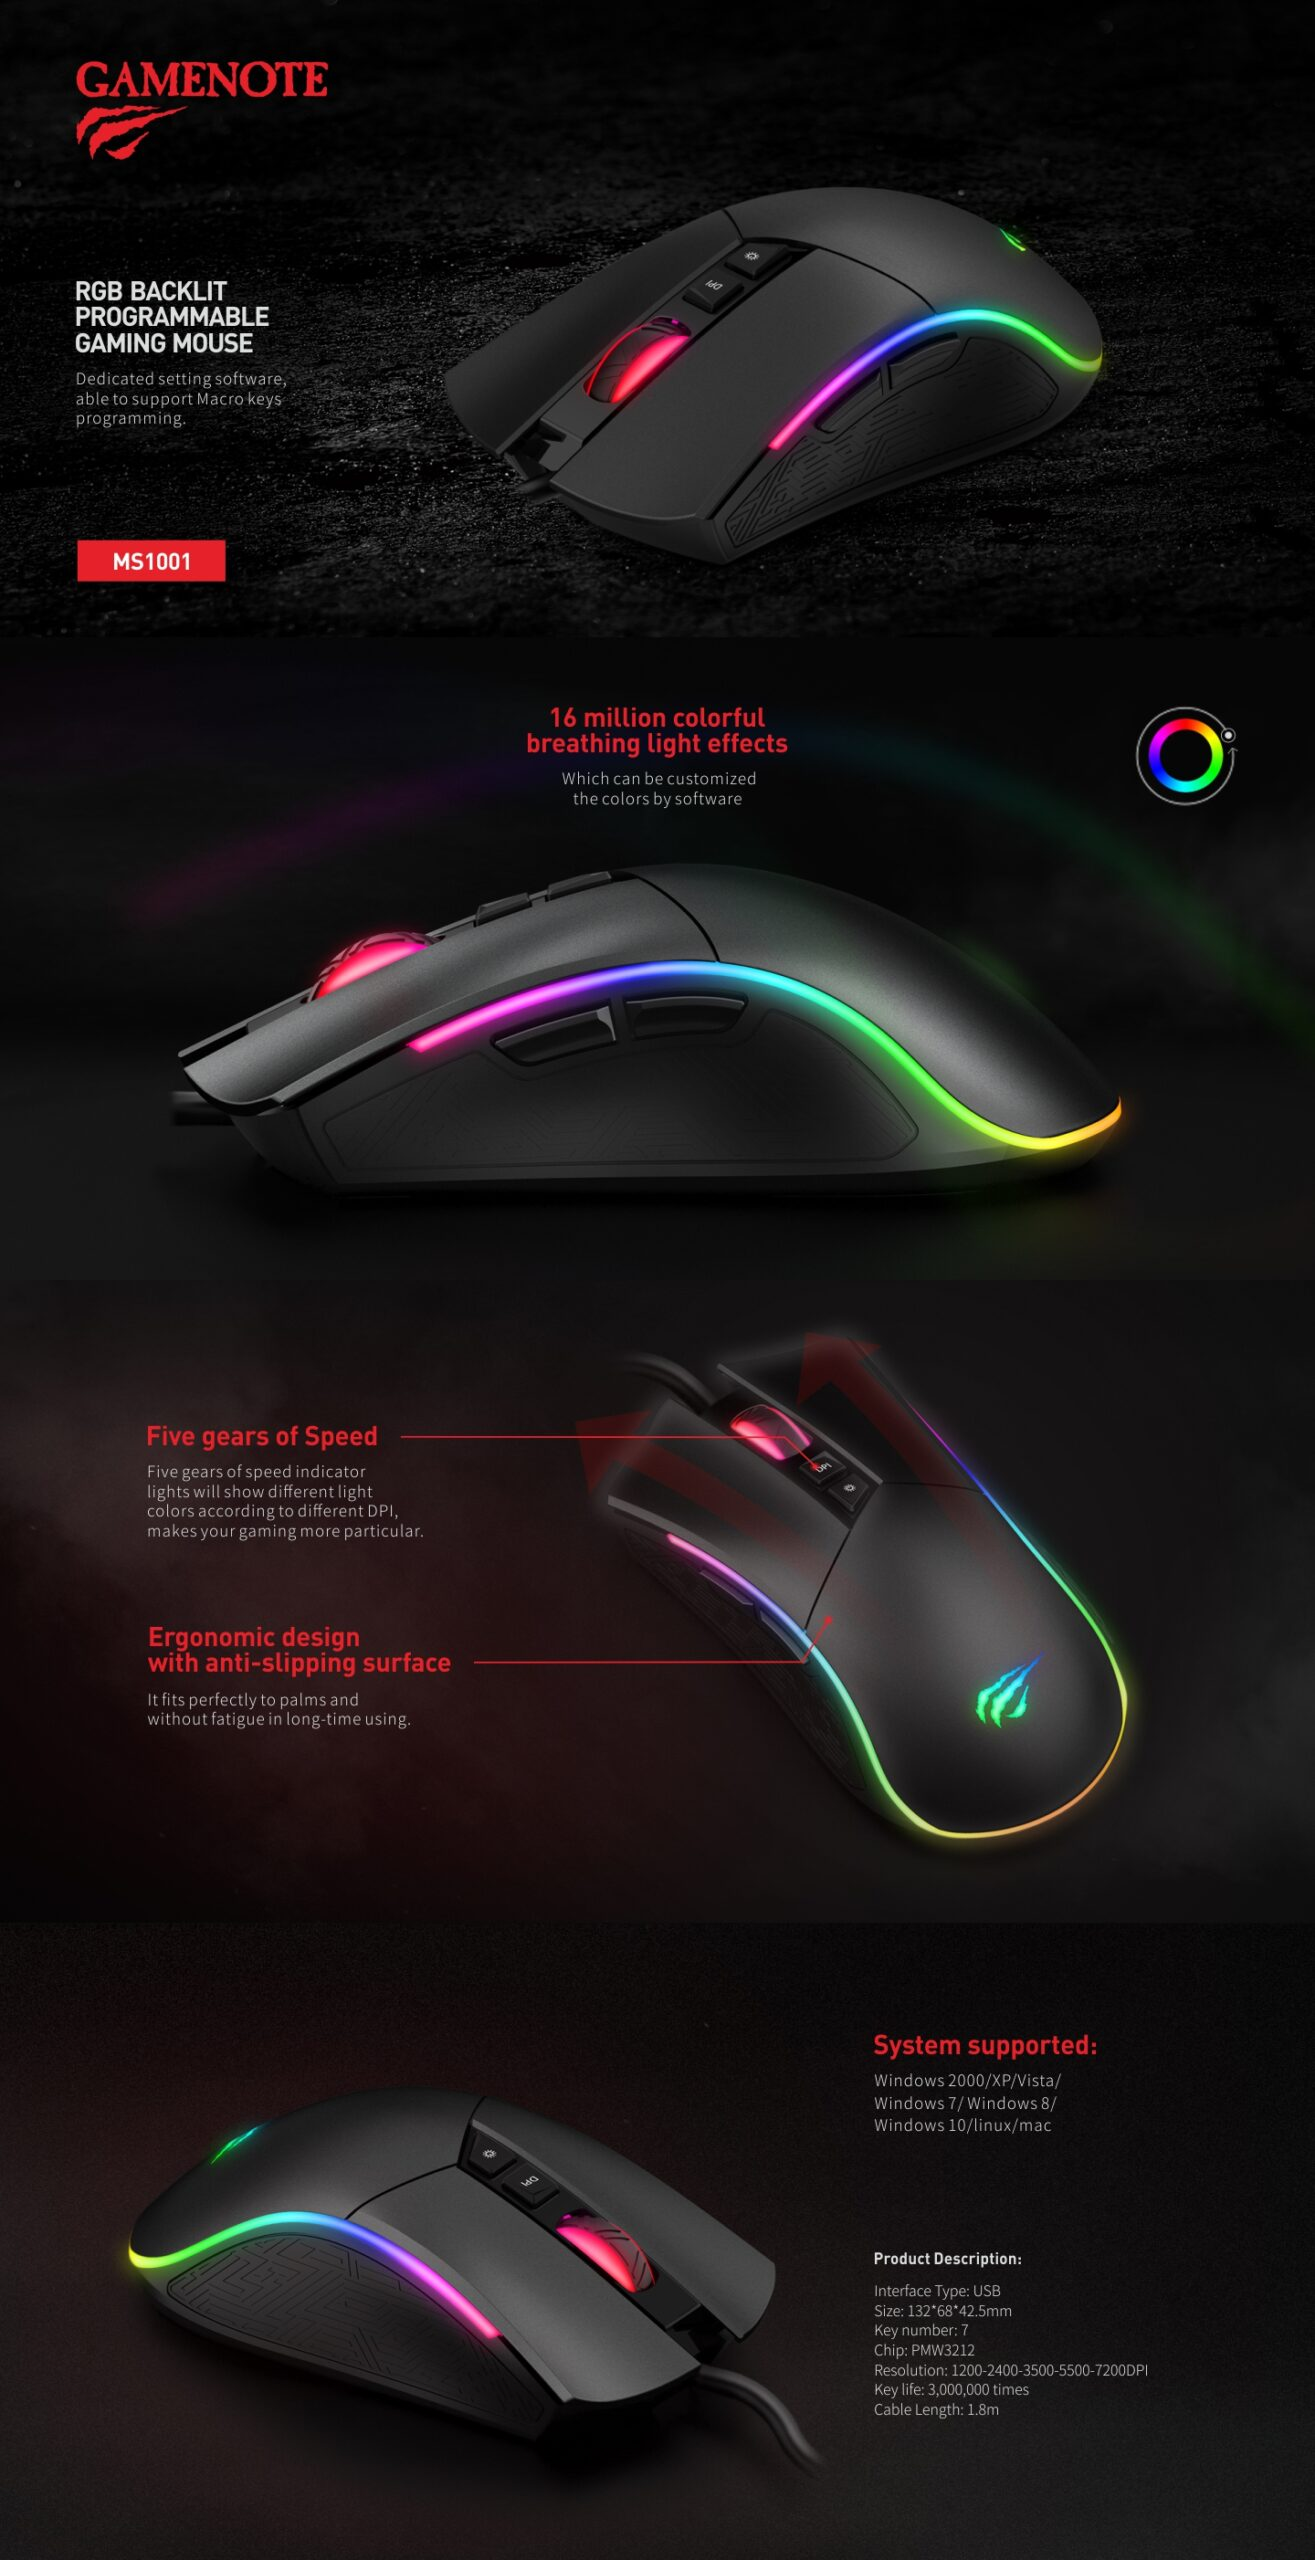 Havit Mouse Software : havit, mouse, software, Check, Havit, Gaming, Mouse, Right